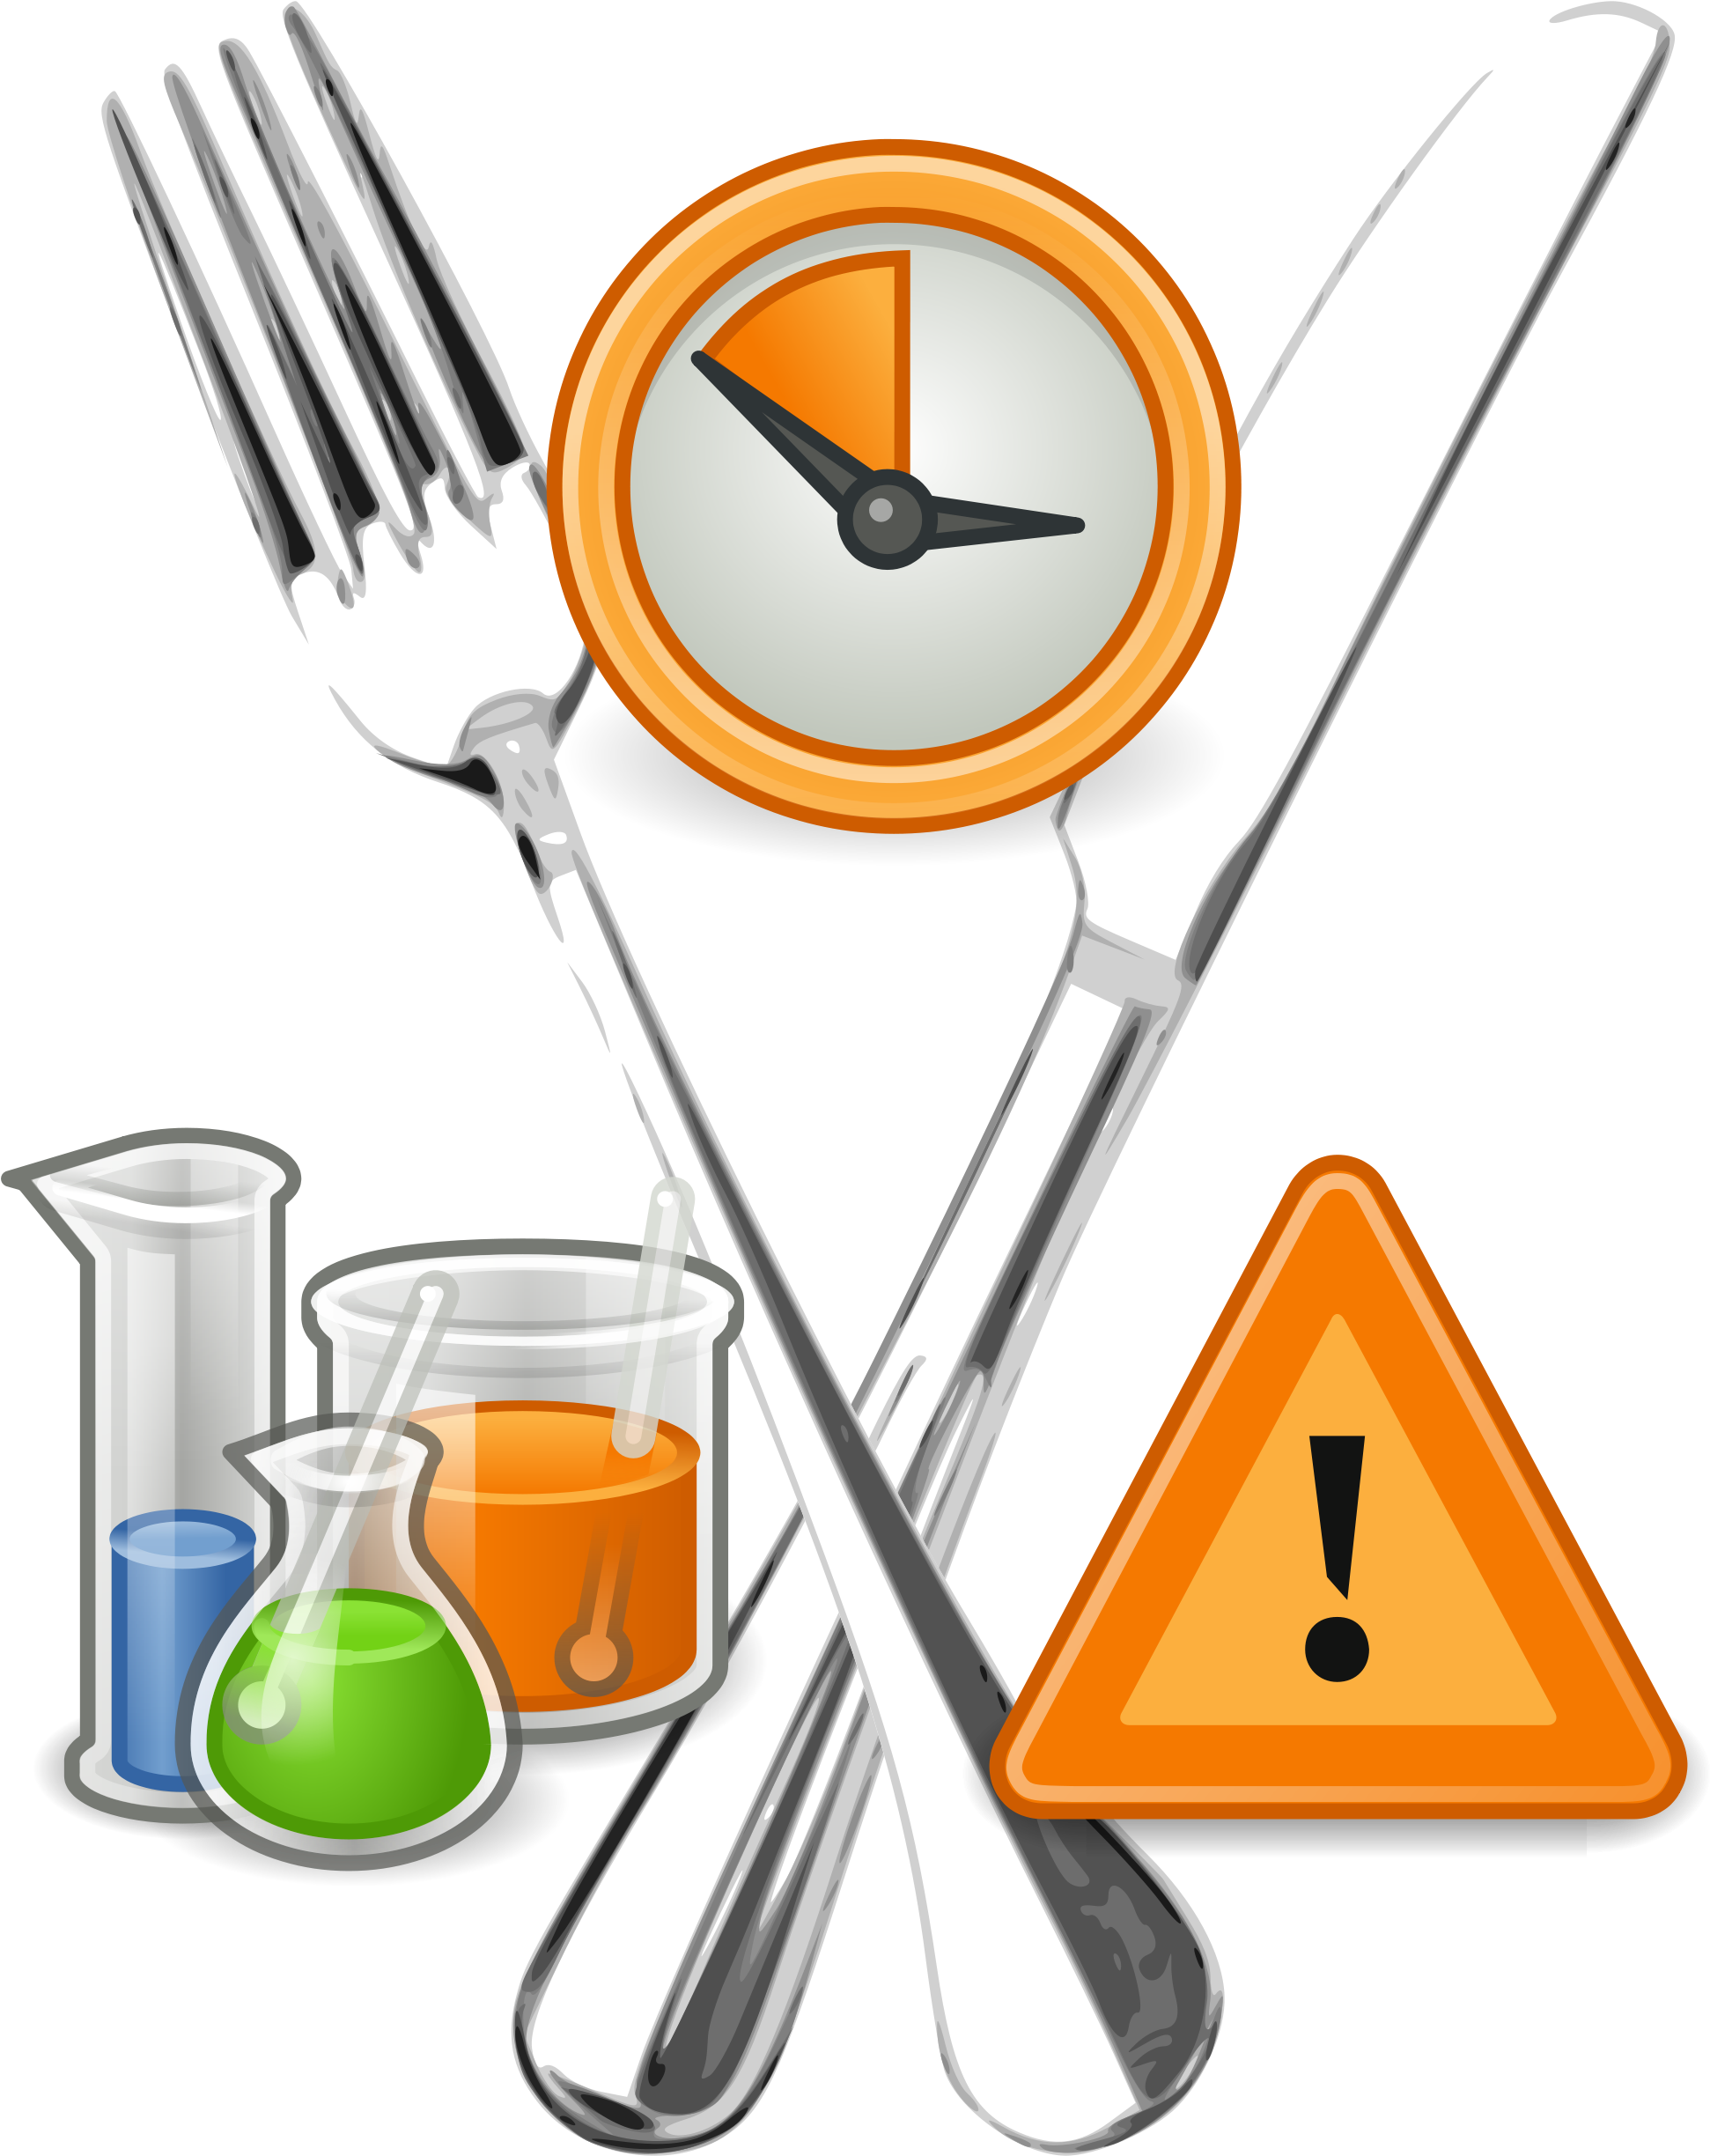 Food Hygiene Clipart - Safety Issues Of Irradiated Food (2000x2571)